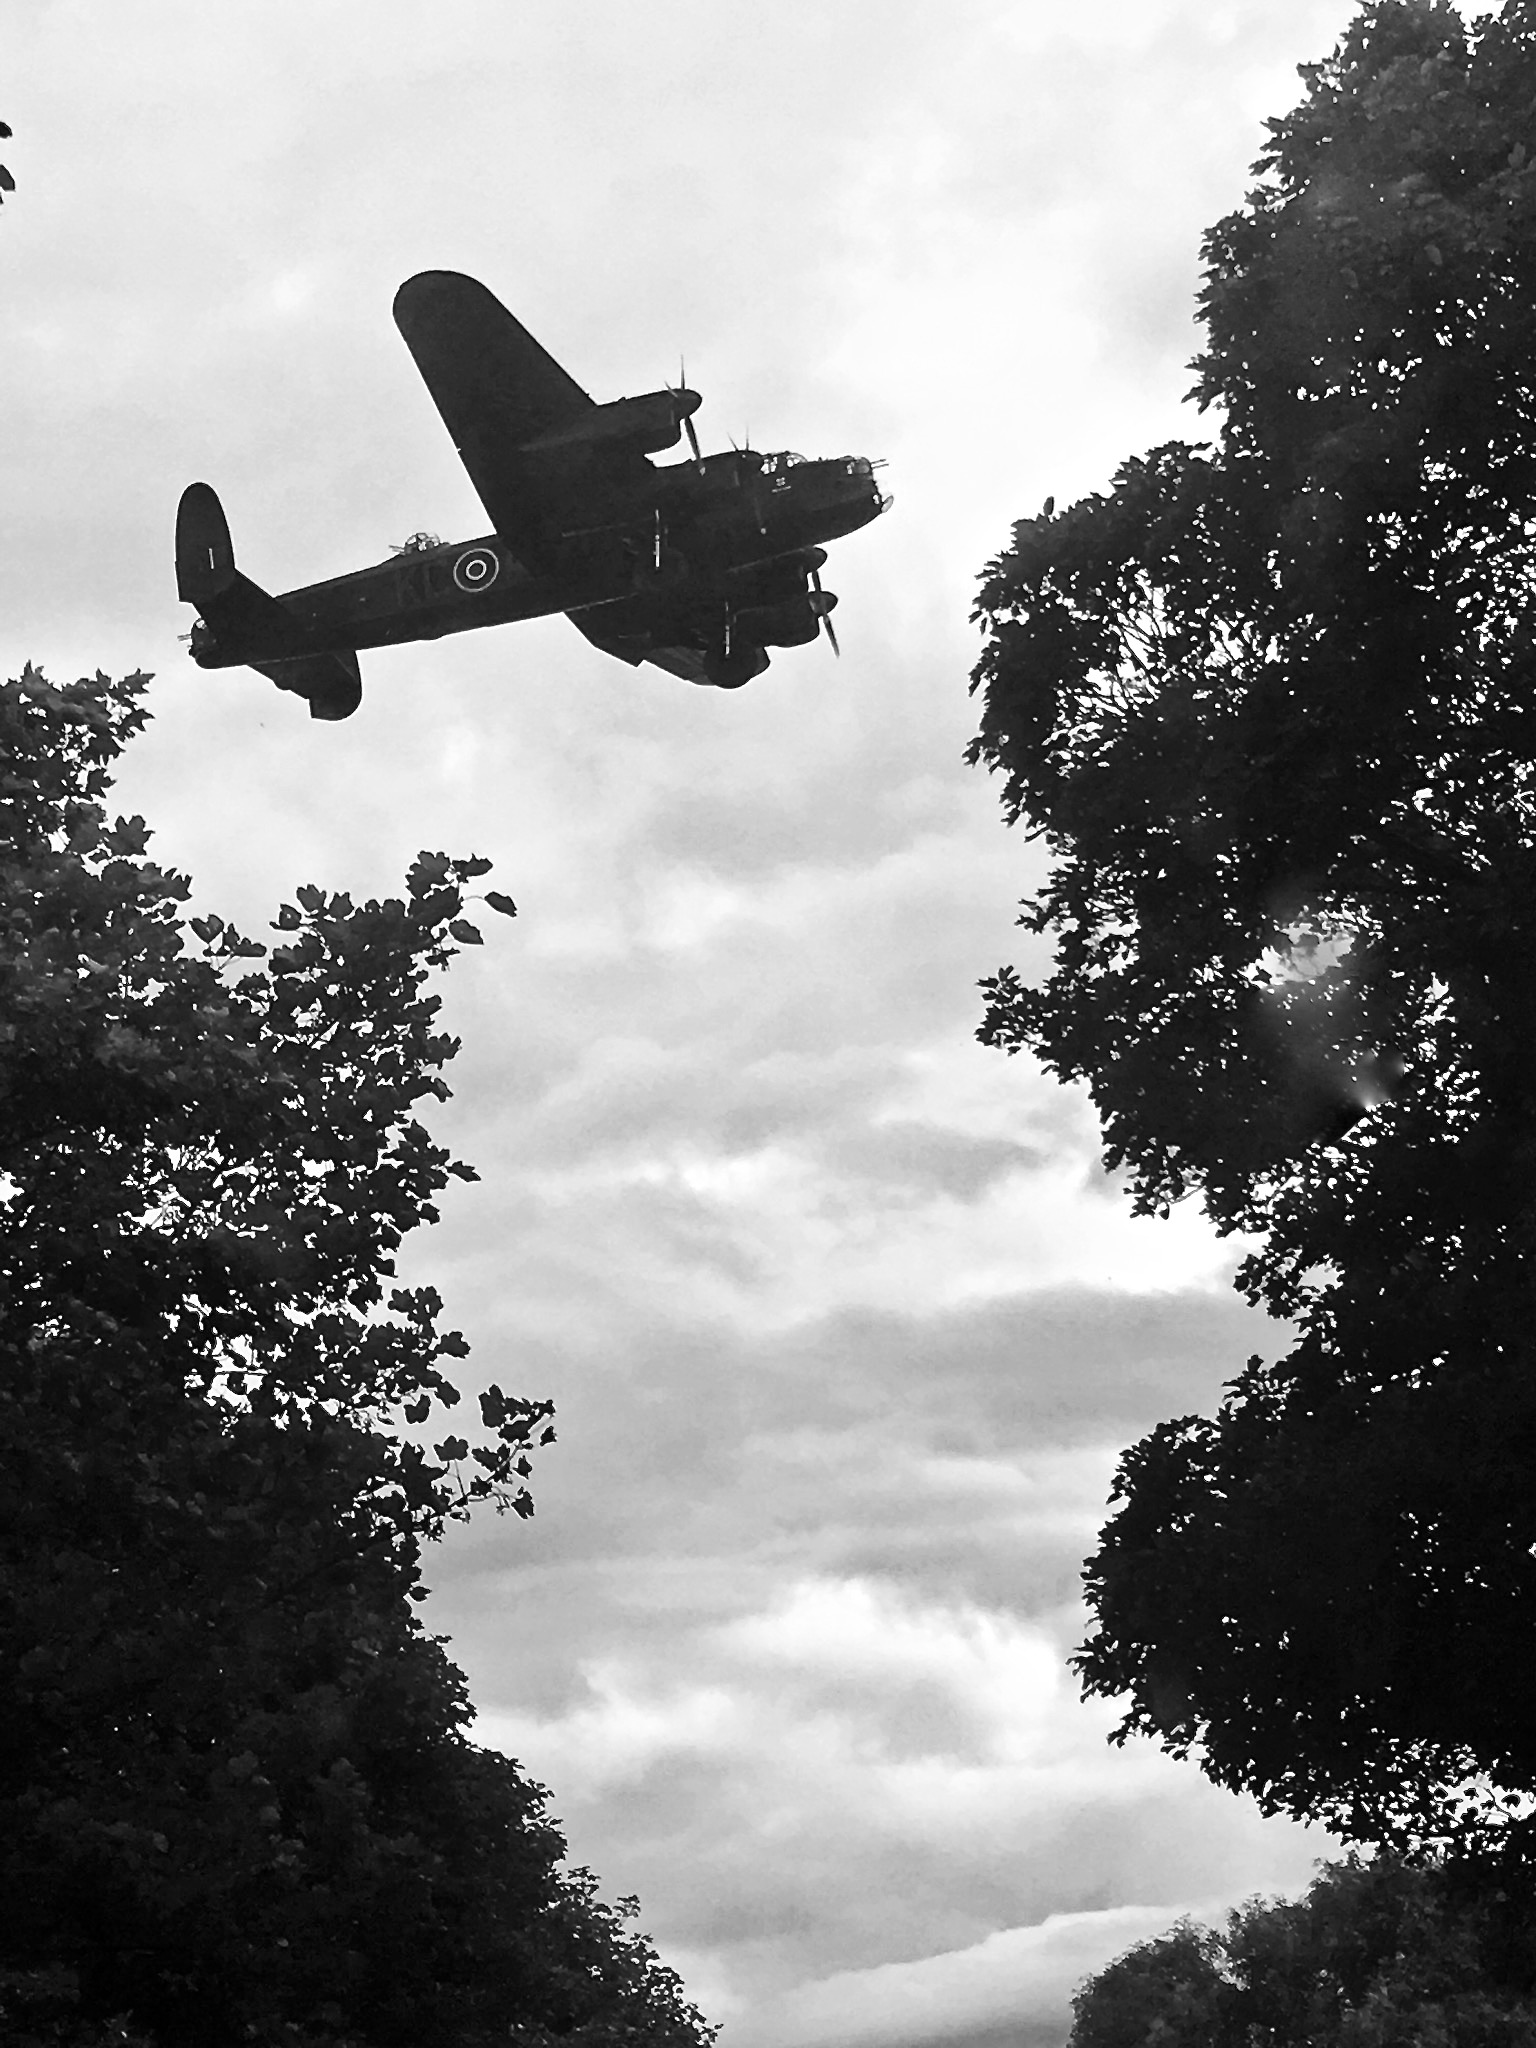 It's not every day a Lancaster Bomber lands almost on top of you. No DSLR? no problem! Shot on my iPhone.